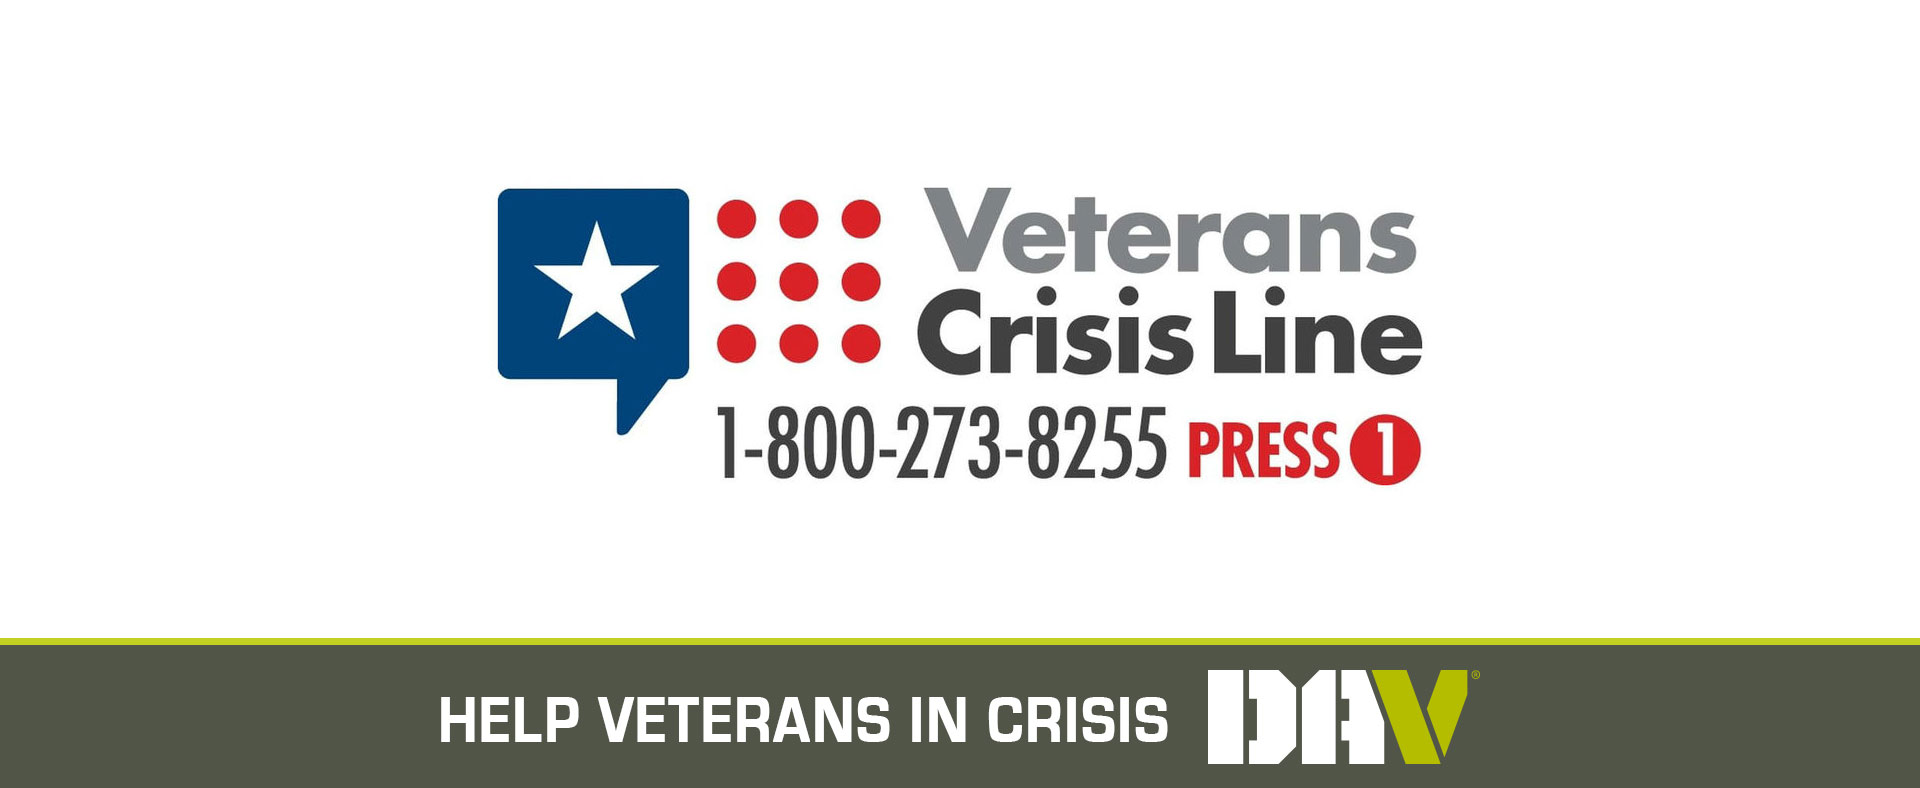 Call the Veterans Crisis Line | Help Veterans in Crisis